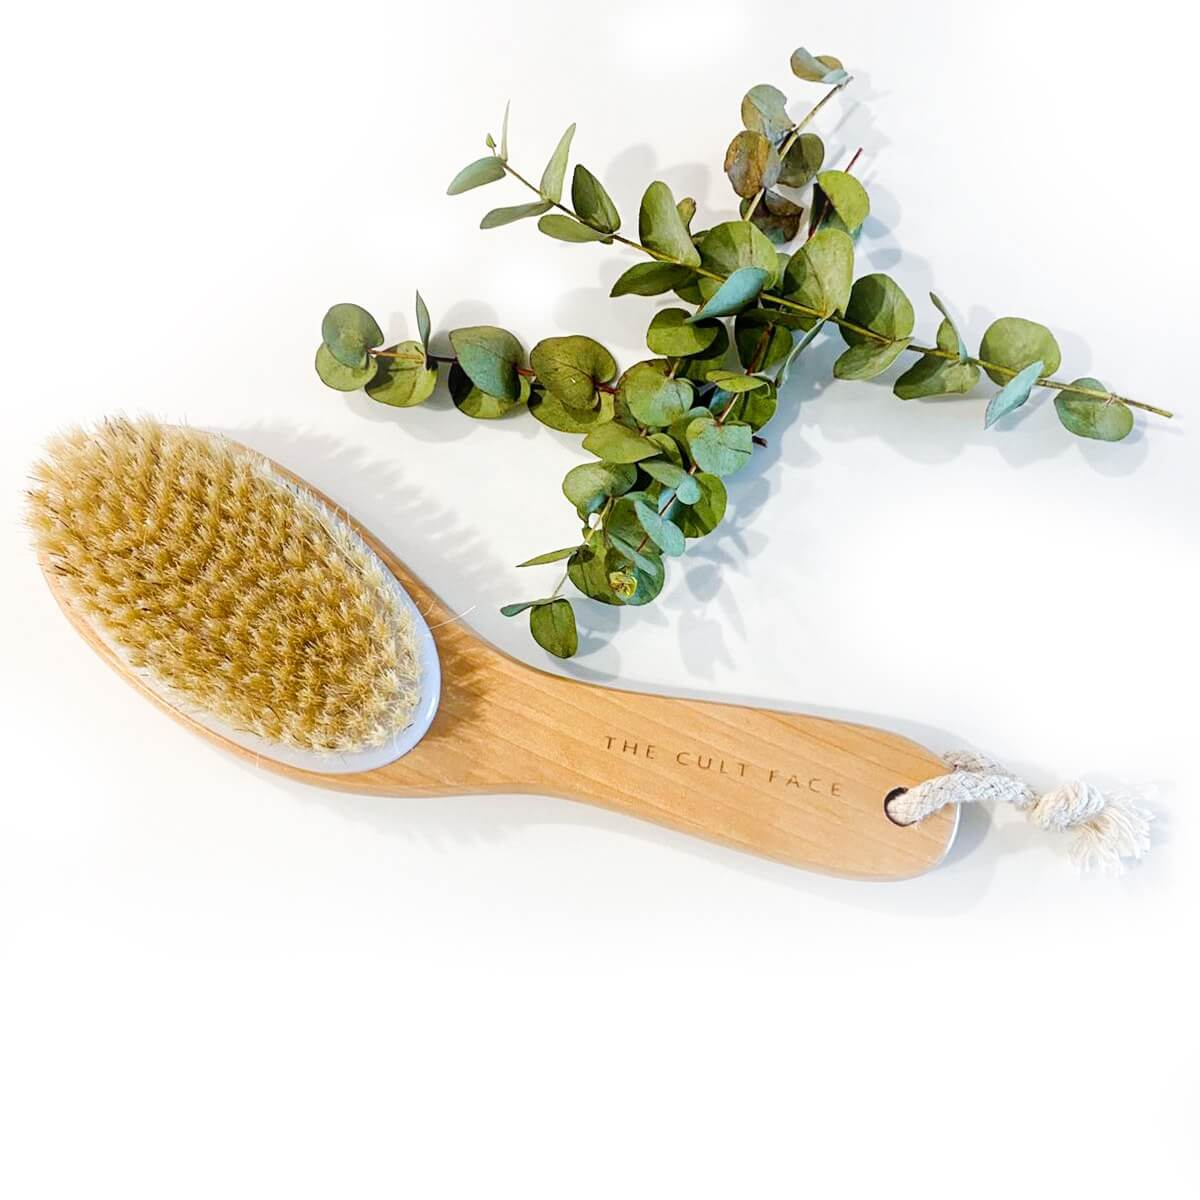 How to Dry Brush to Get the Best Results